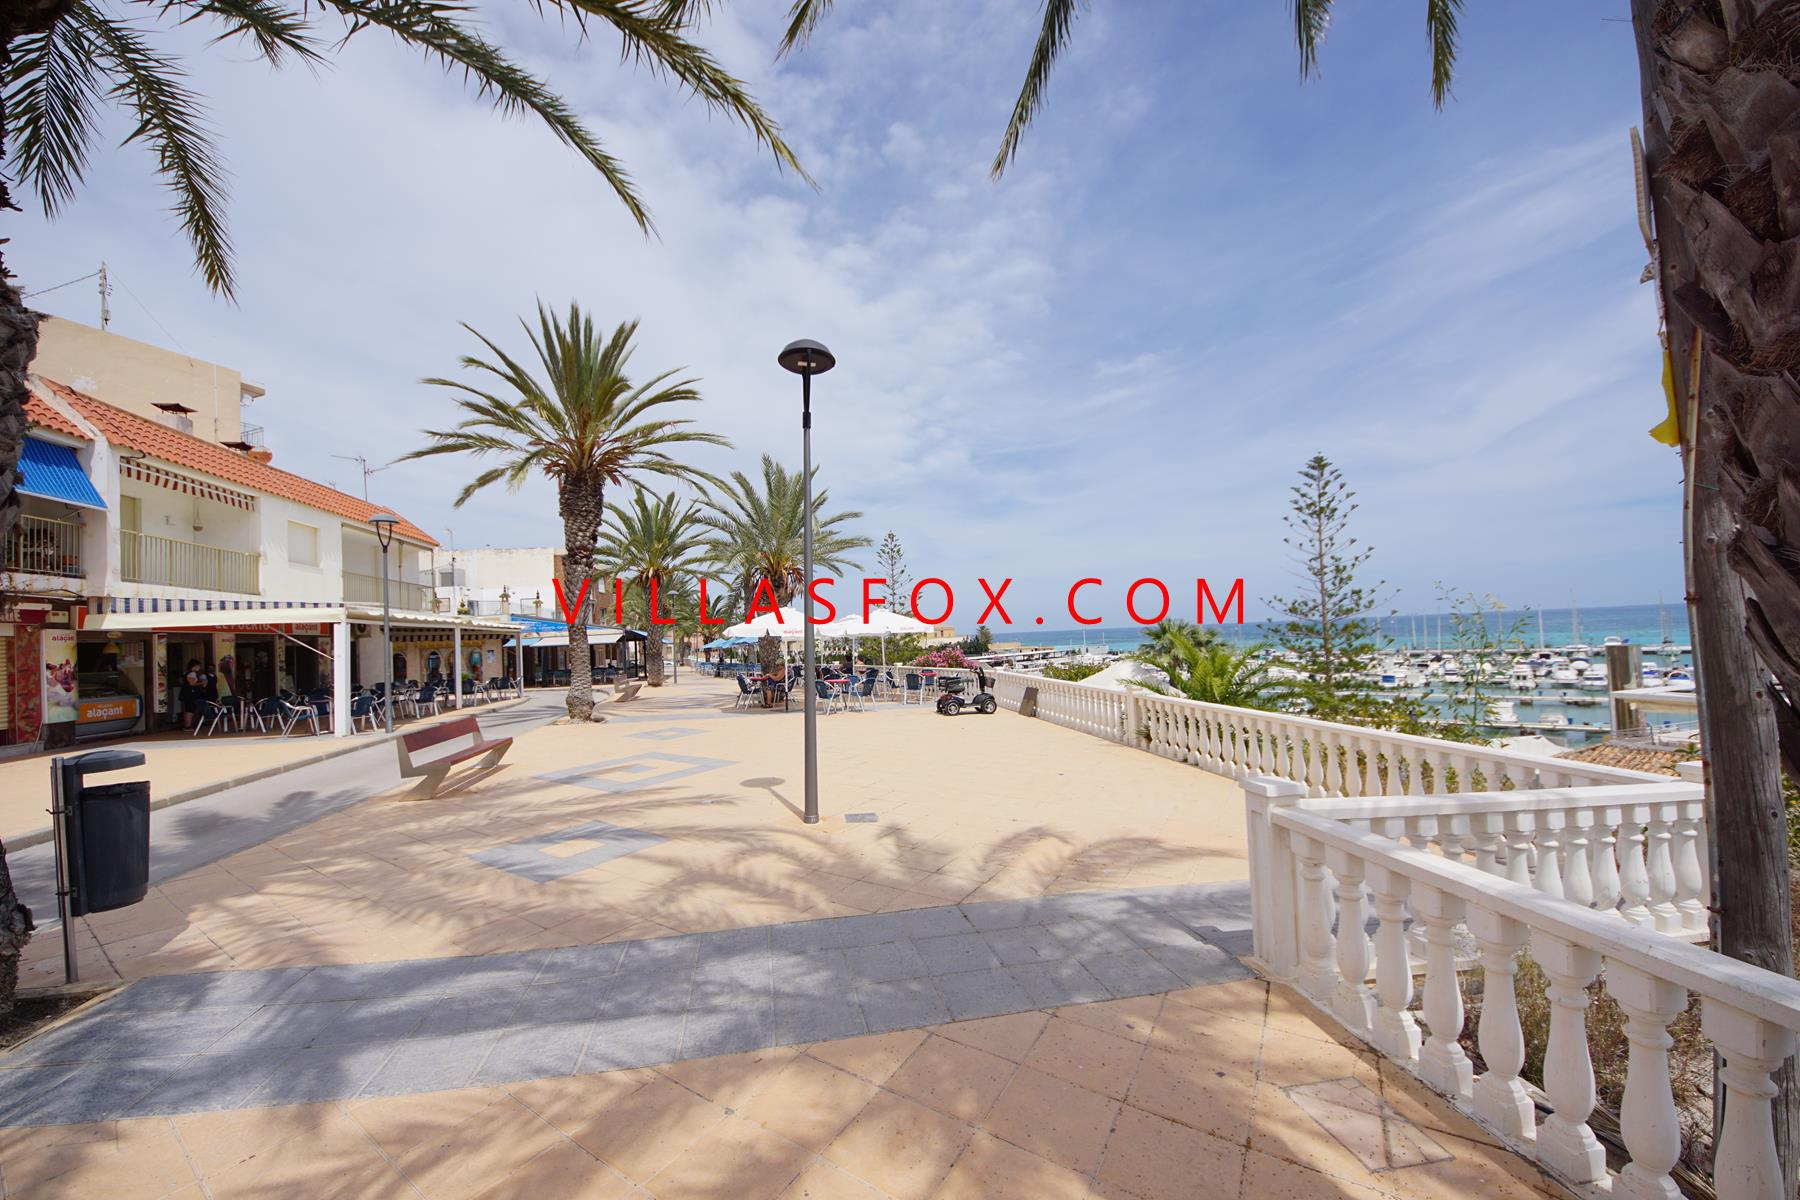 Walking distance to beach - excellent value in Torre de la Horadada